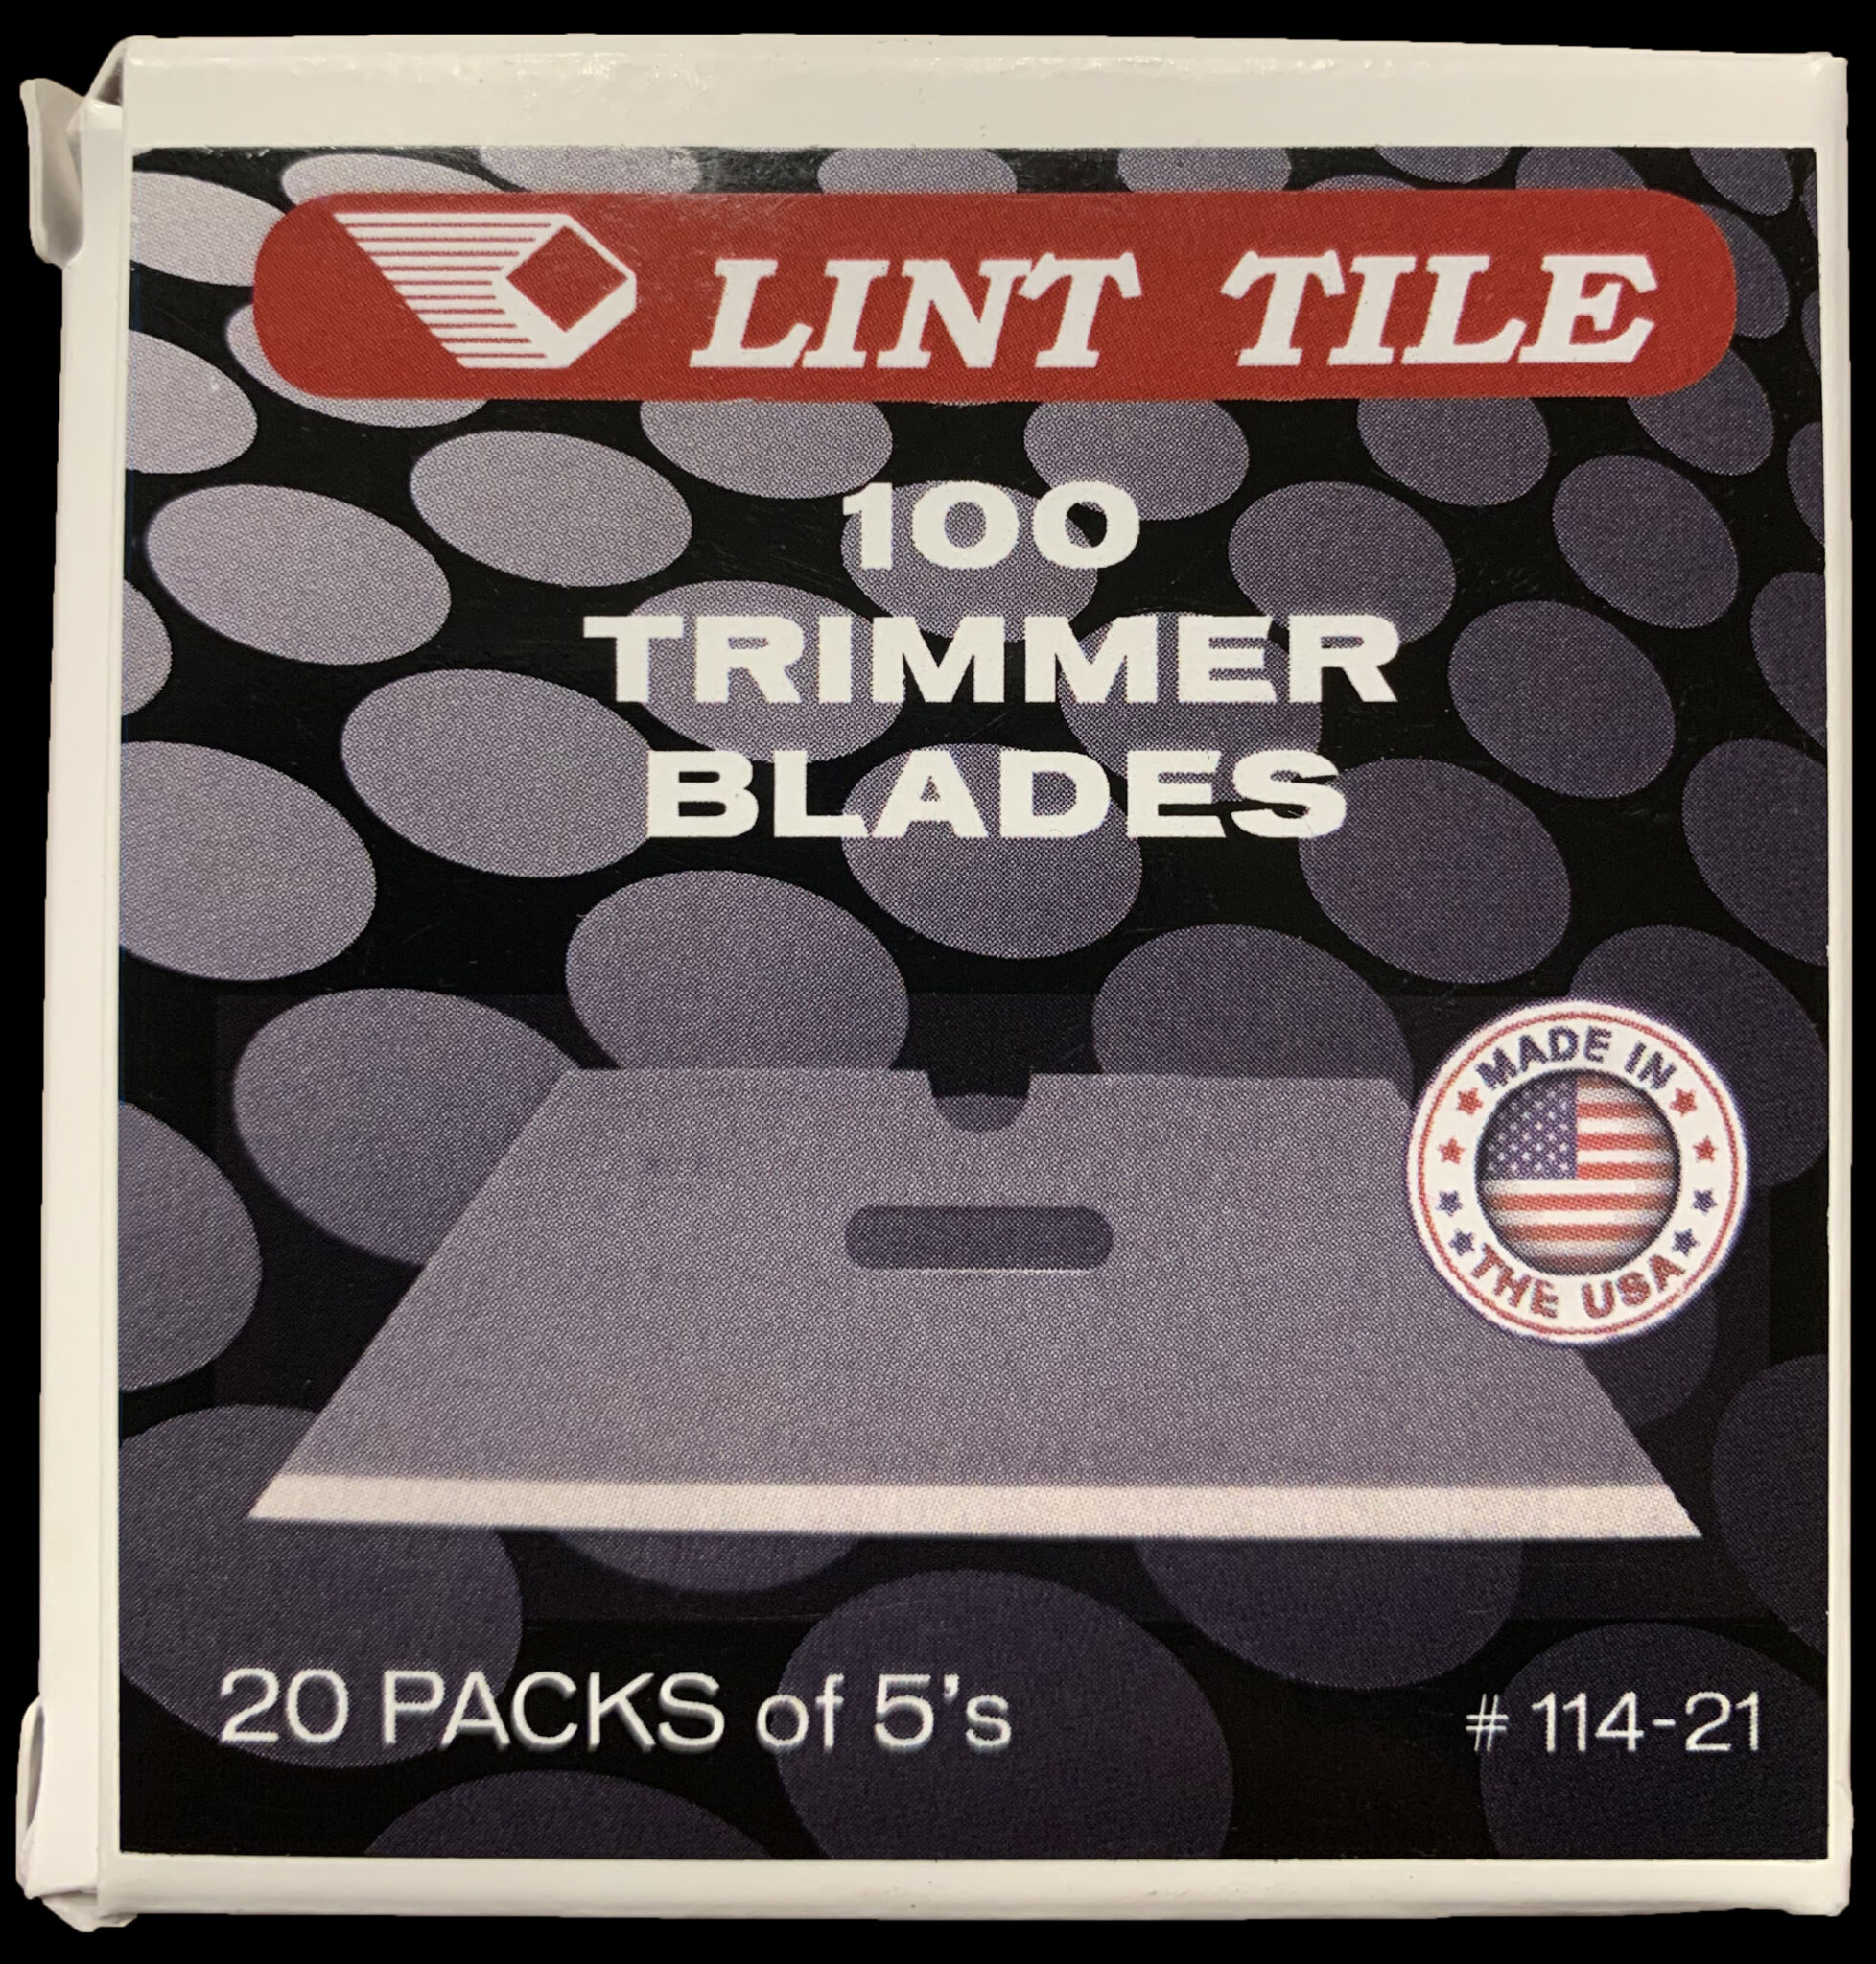 Lint Tile 100 Trimmer Blades